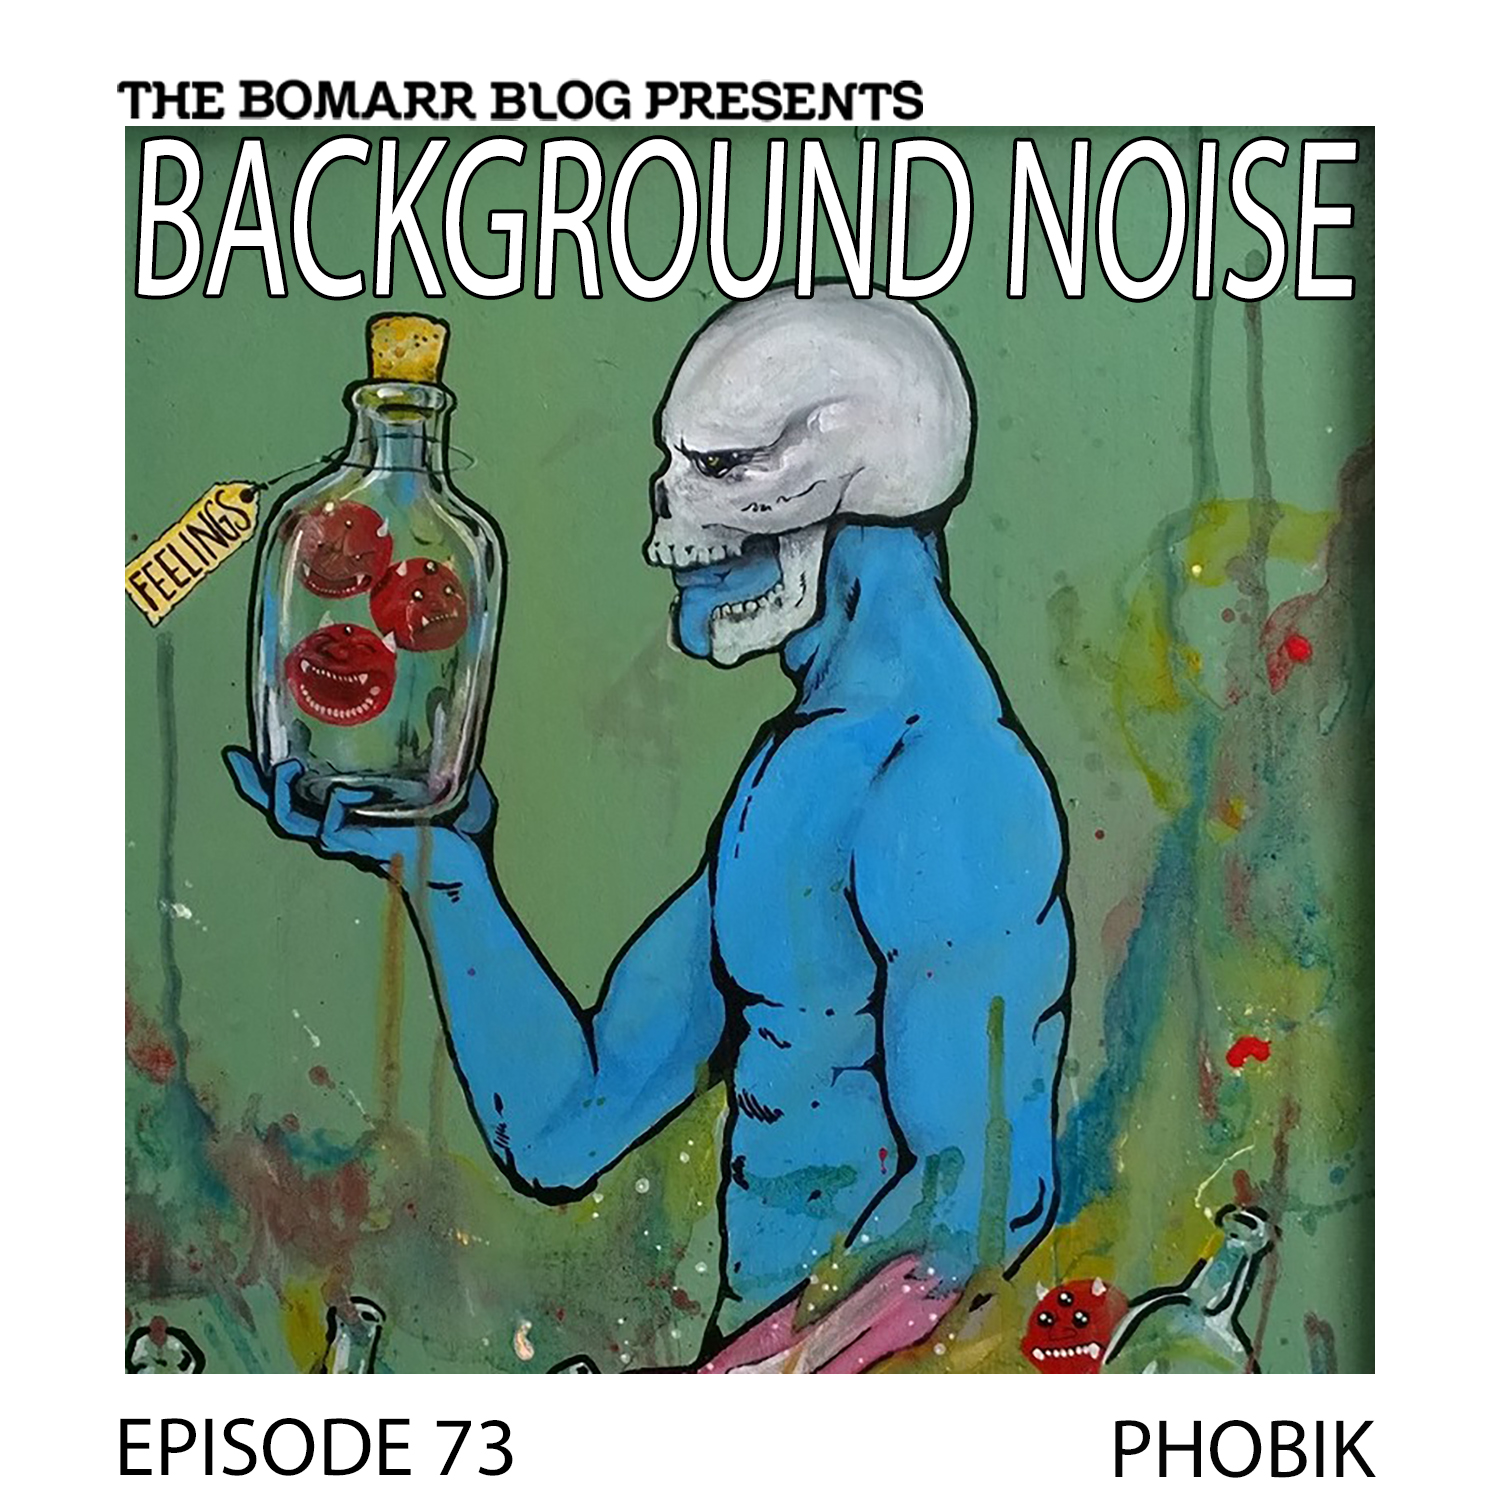 THE BACKGROUND NOISE PODCAST SERIES FOCUSES ON THE MUSIC THAT ARTISTS LISTEN TO WHEN THEY WORK, WHAT MUSIC INSPIRES THEM, OR JUST MUSIC THEY LIKE. THIS WEEK, IN EPISODE 73, THE FOCUS IS ON ARTIST PHOBIK